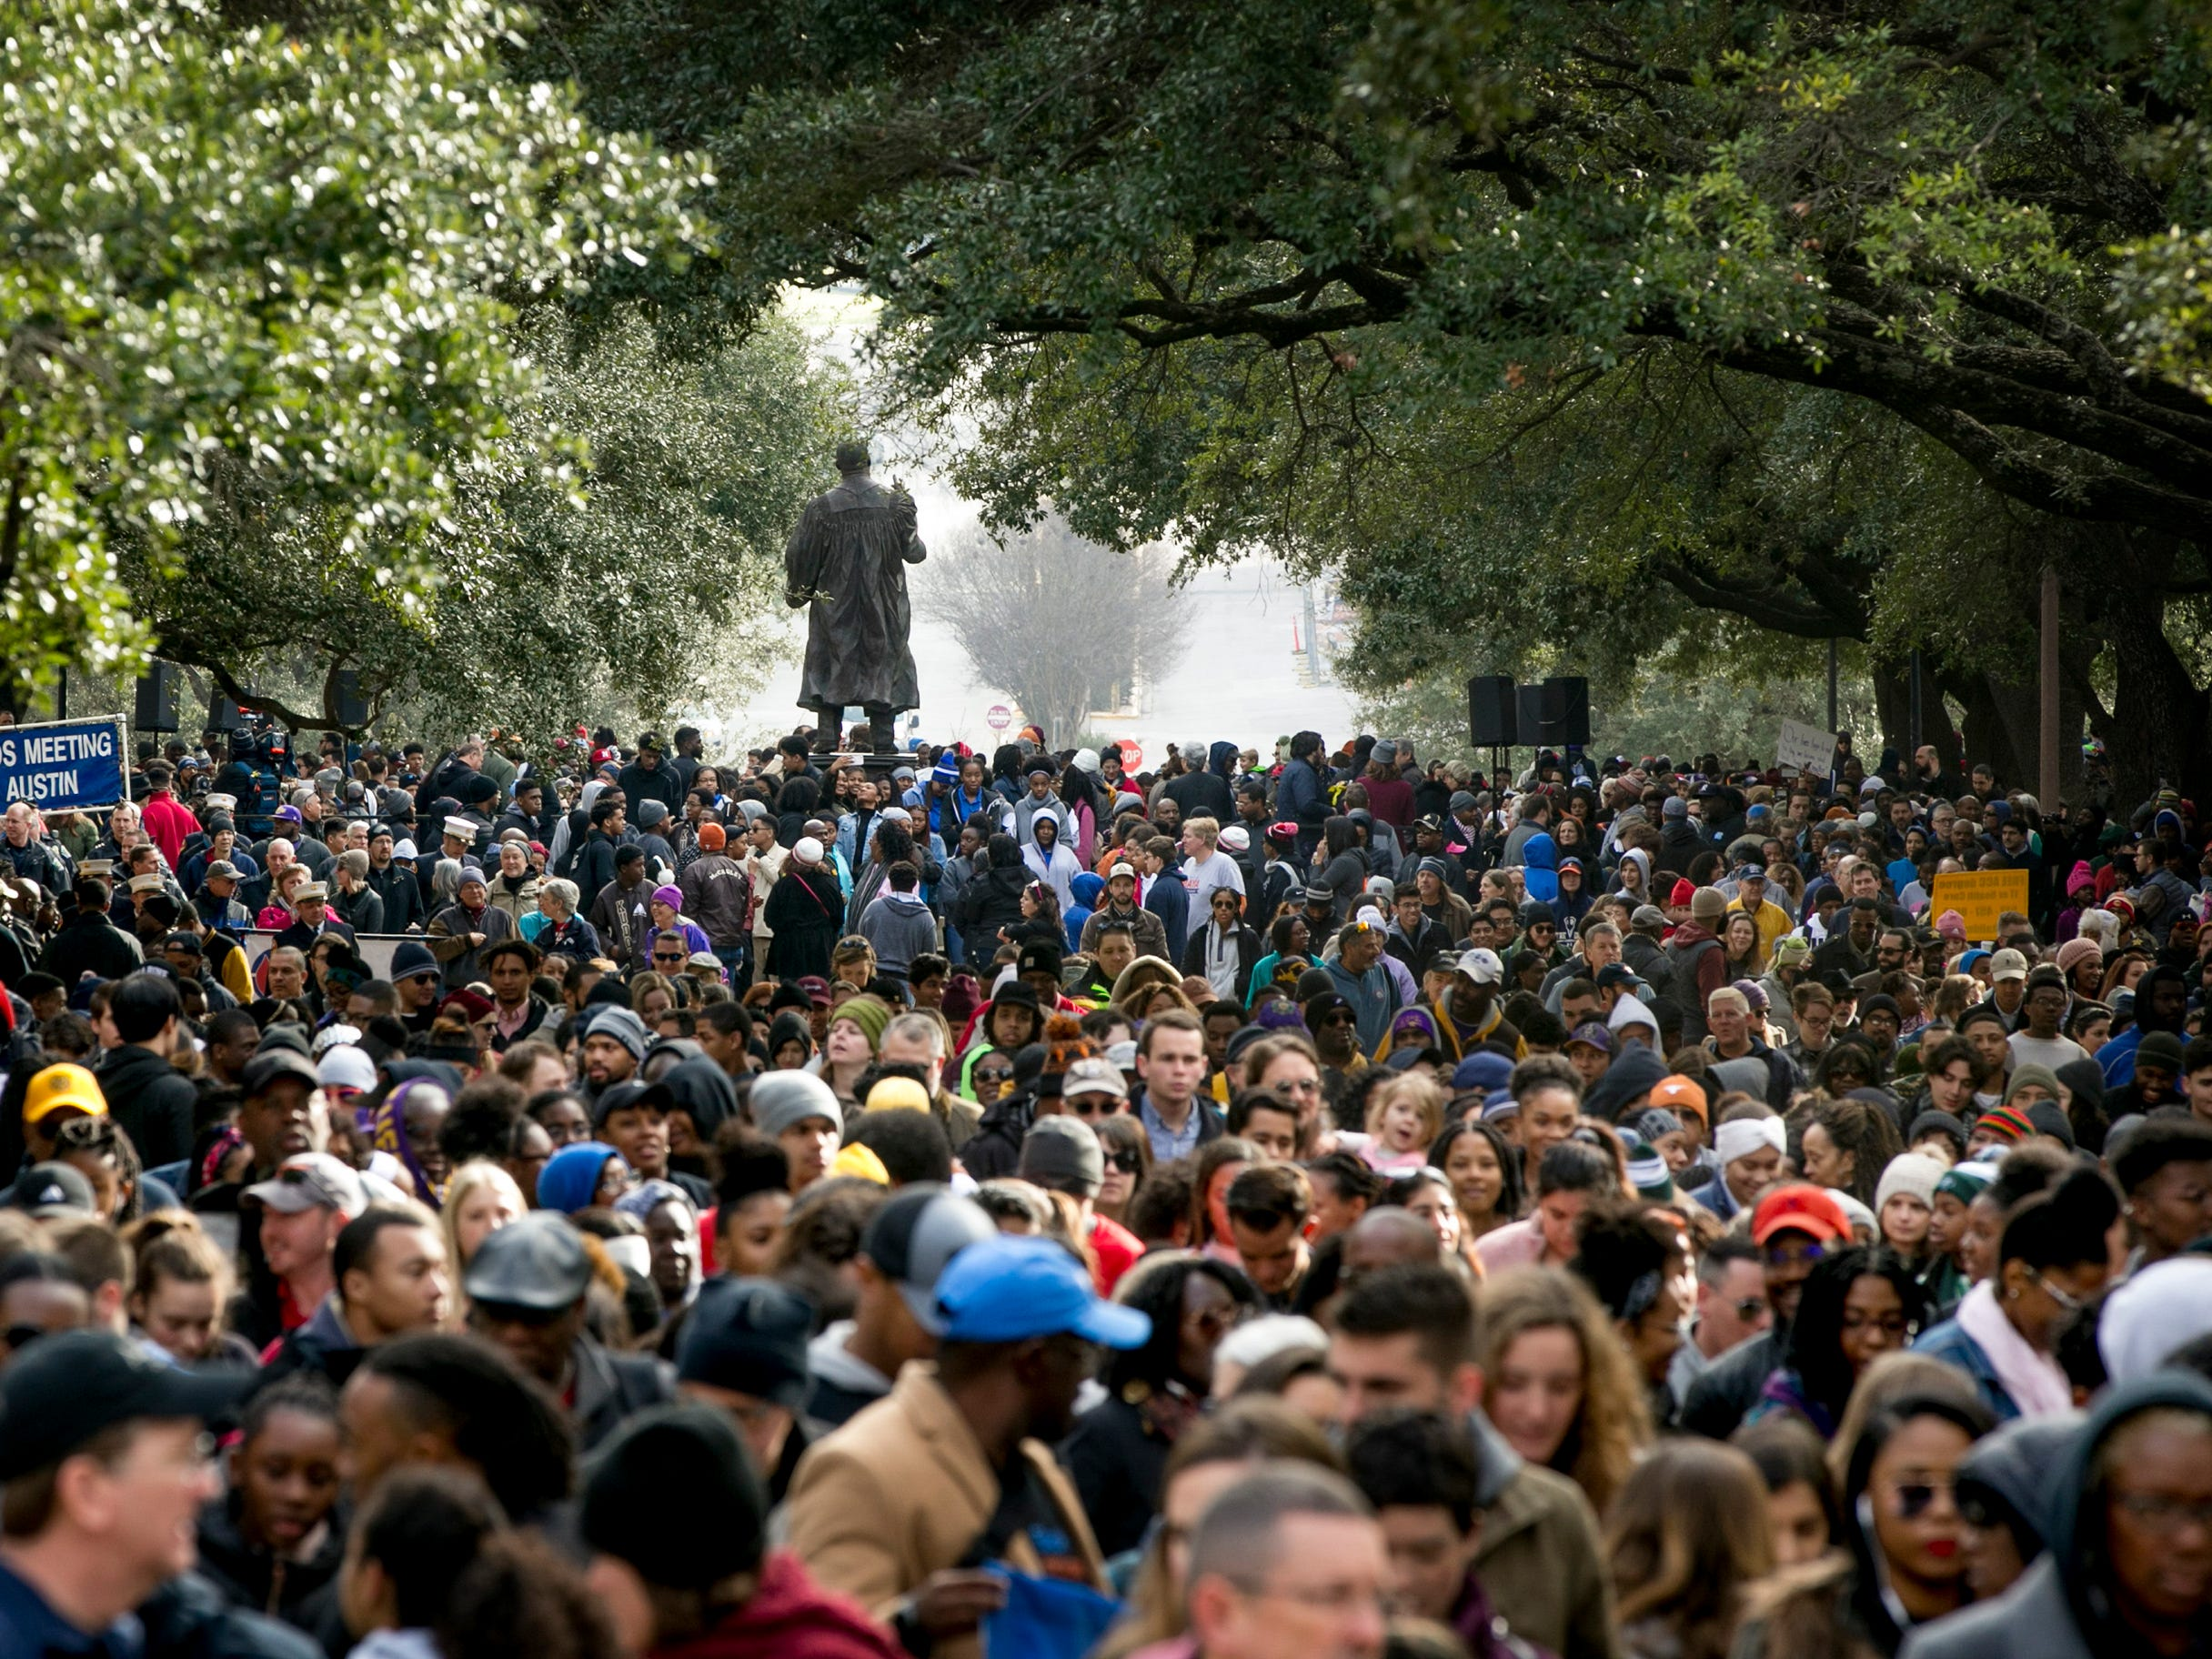 Thousands gather at the MLK statue on the University of Texas at Austin campus during the MLK March and Festival.